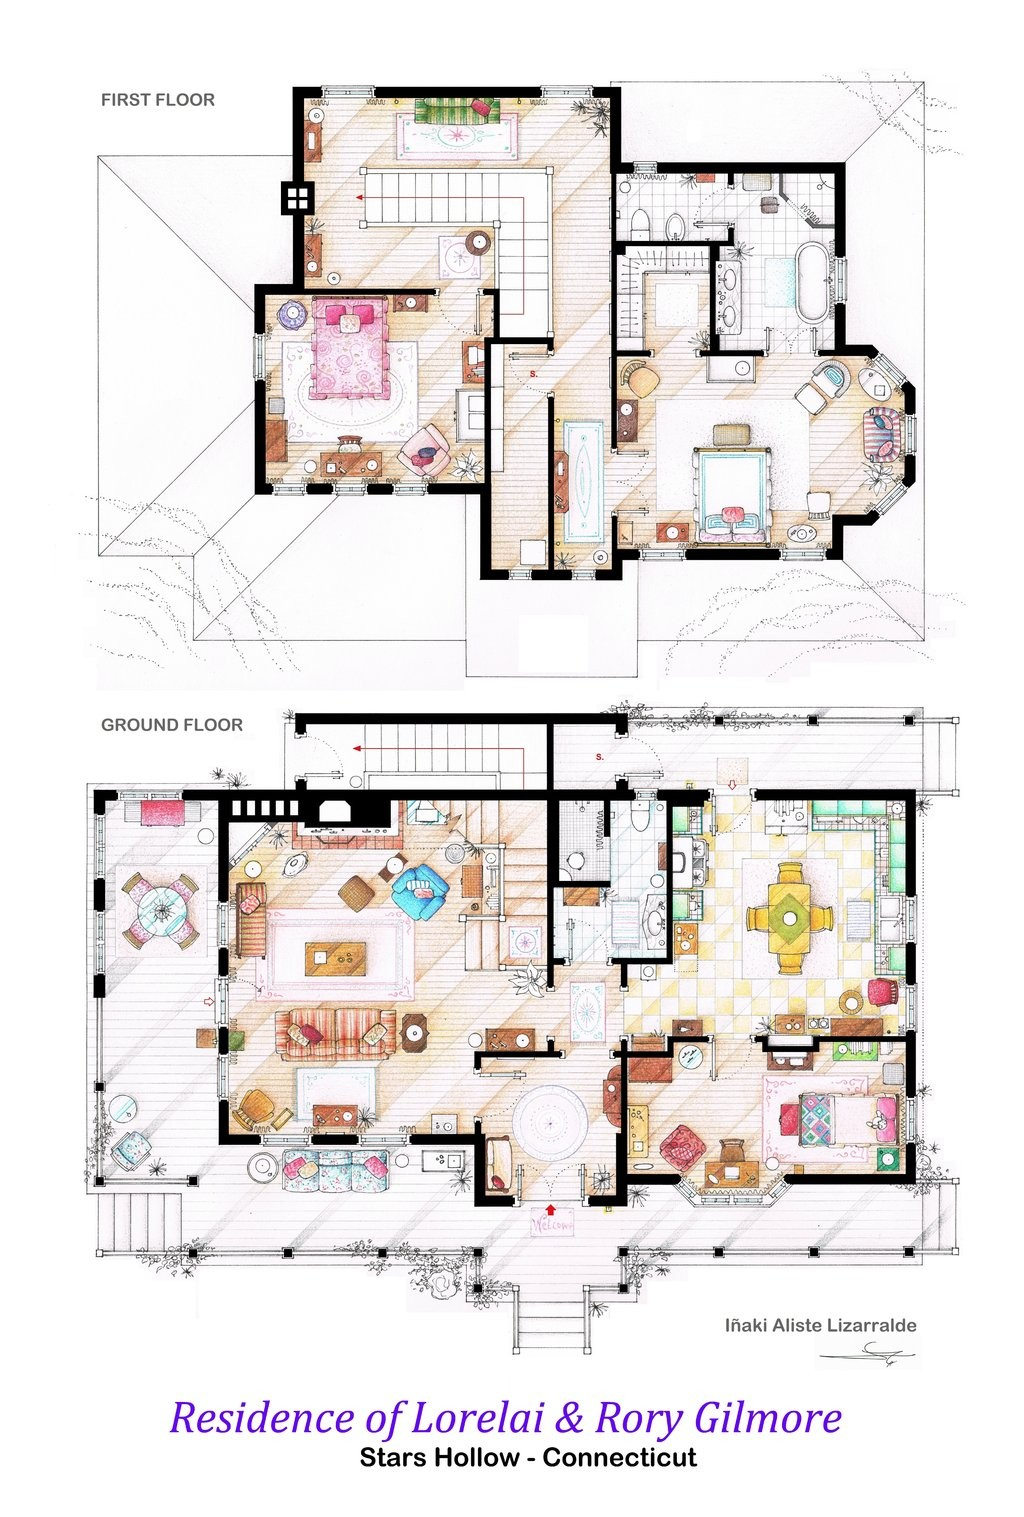 house_of_lorelai_and_rory_gilmore___floorplans_by_nikneuk-d5to28r.jpg